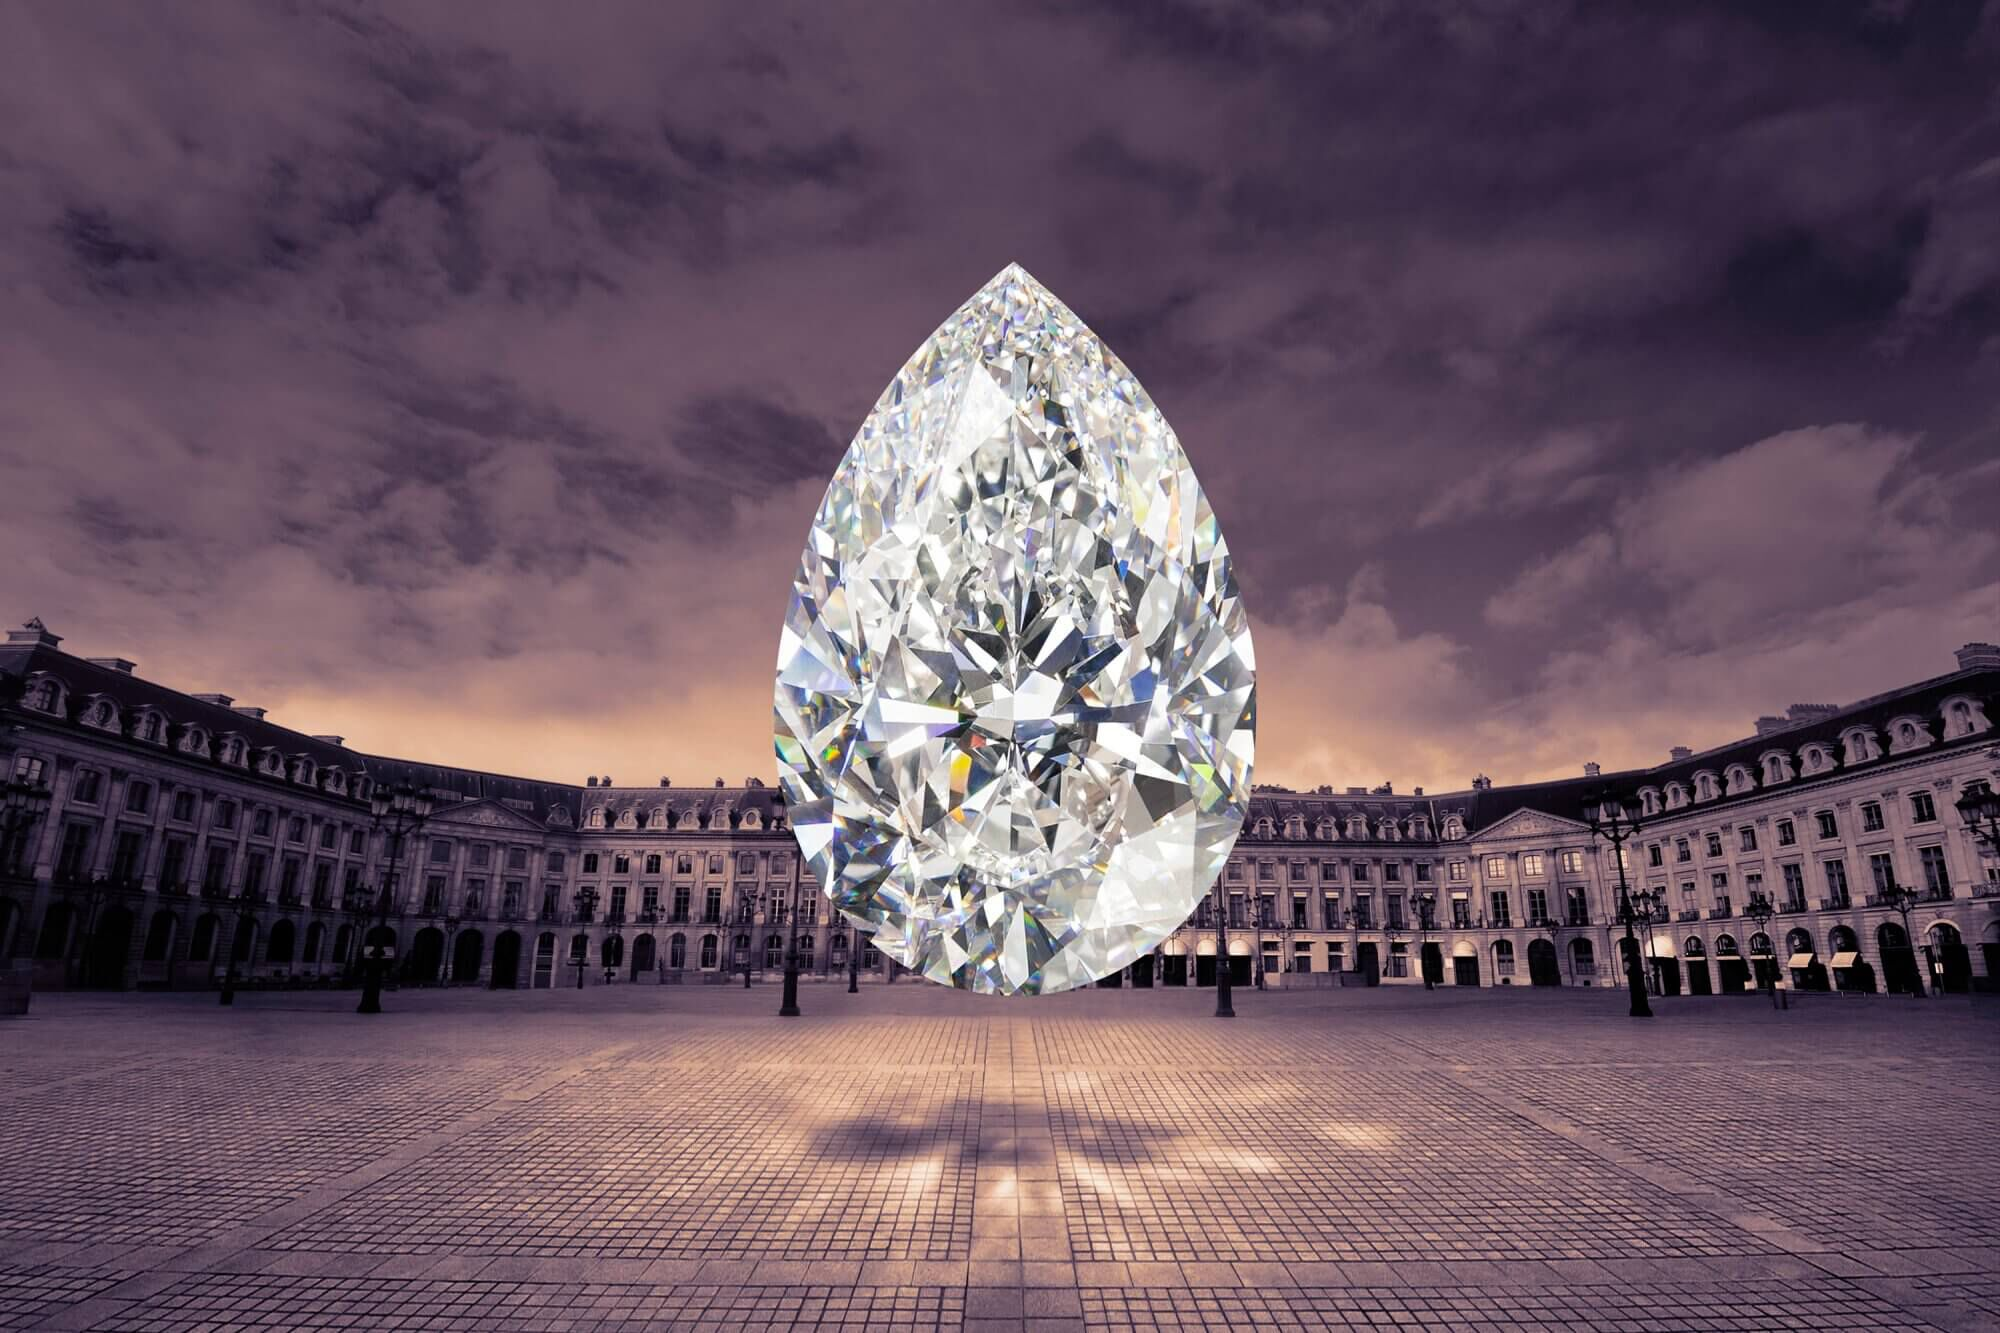 The Graff Vendôme pear shape famous diamond with the Place Vendôme in Paris, France as the background